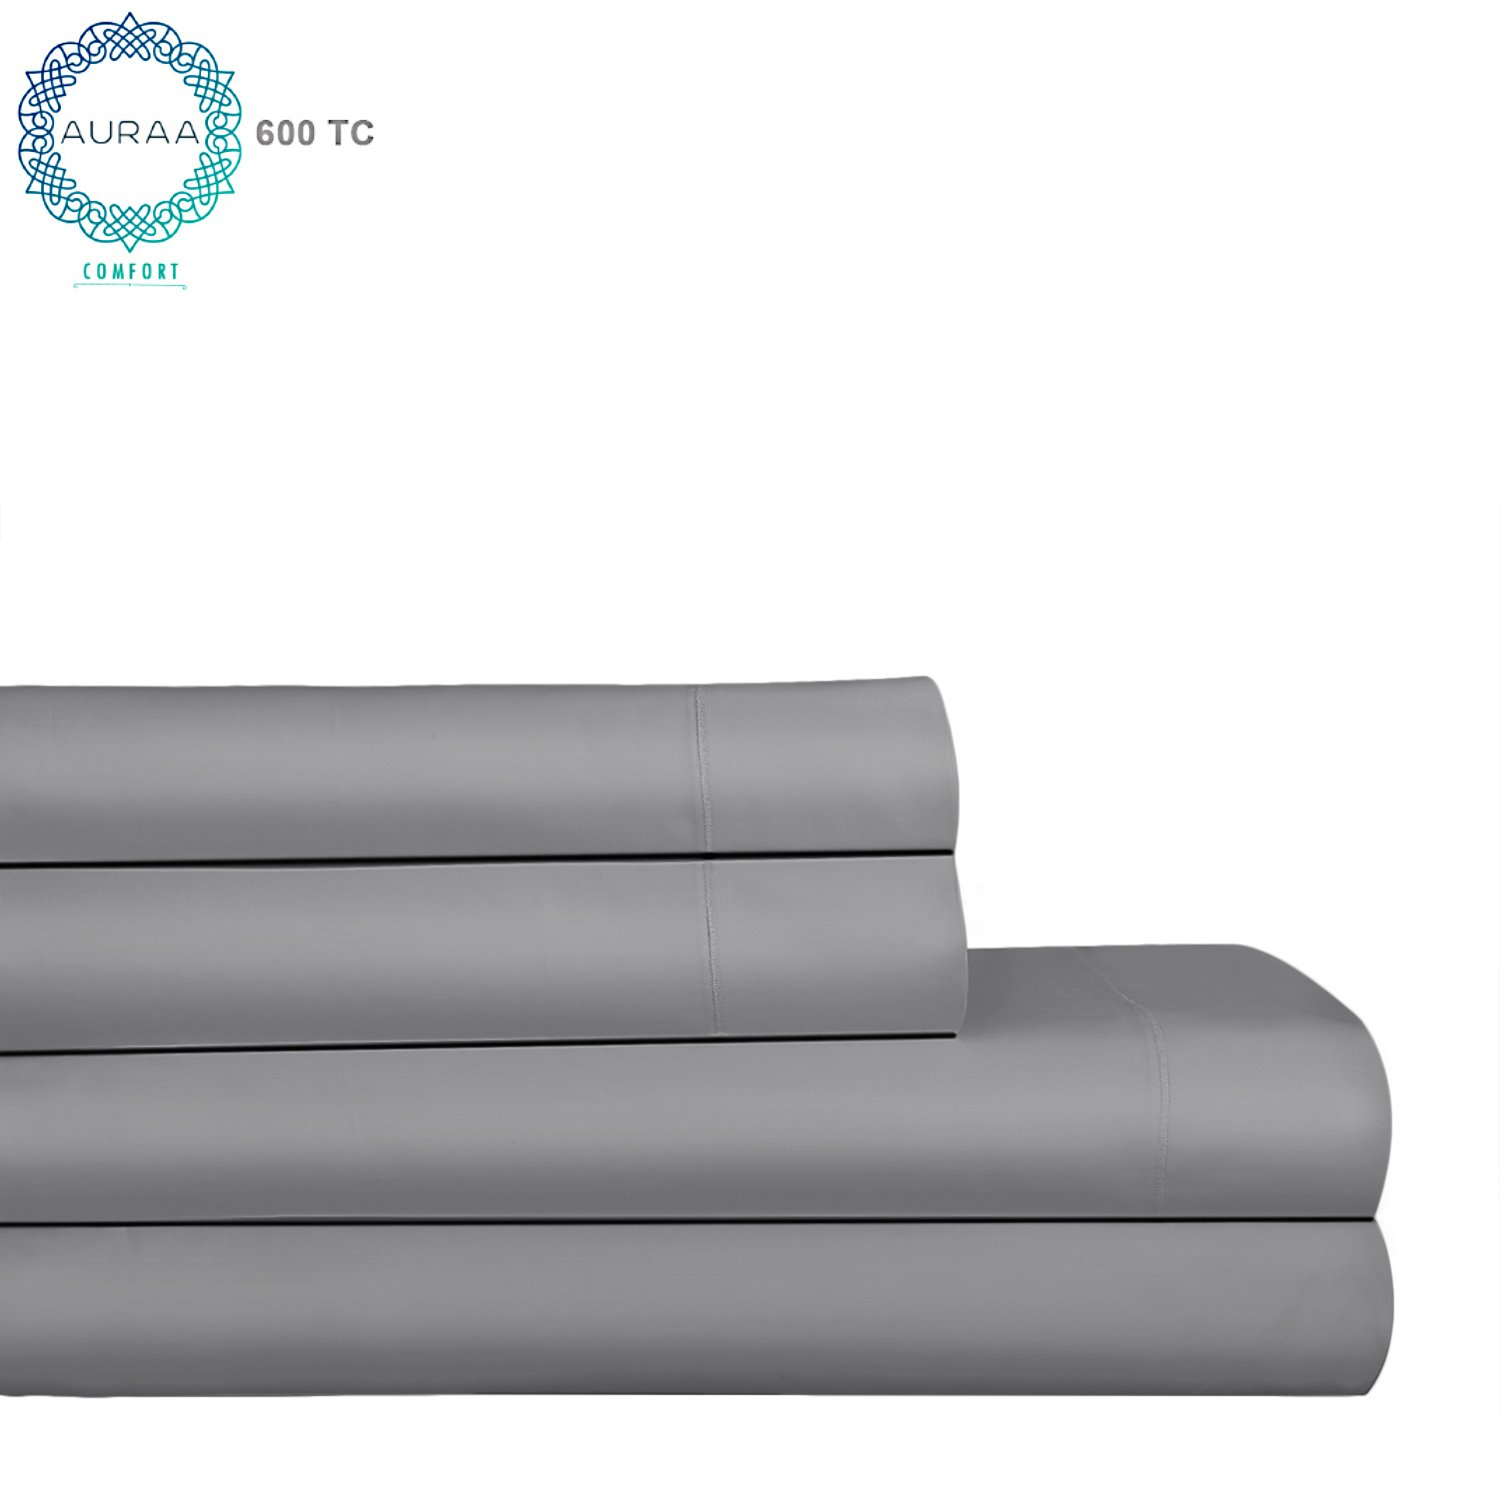 AURAA Comfort 600Thread Count 100% American Supima Long Staple Cotton Sheet Set,4 Pc Set, King Sheets Sateen Weave,Hotel Collection Soft Luxury Bedding,Fits Upto 18'' Deep Pocket,Charcoal